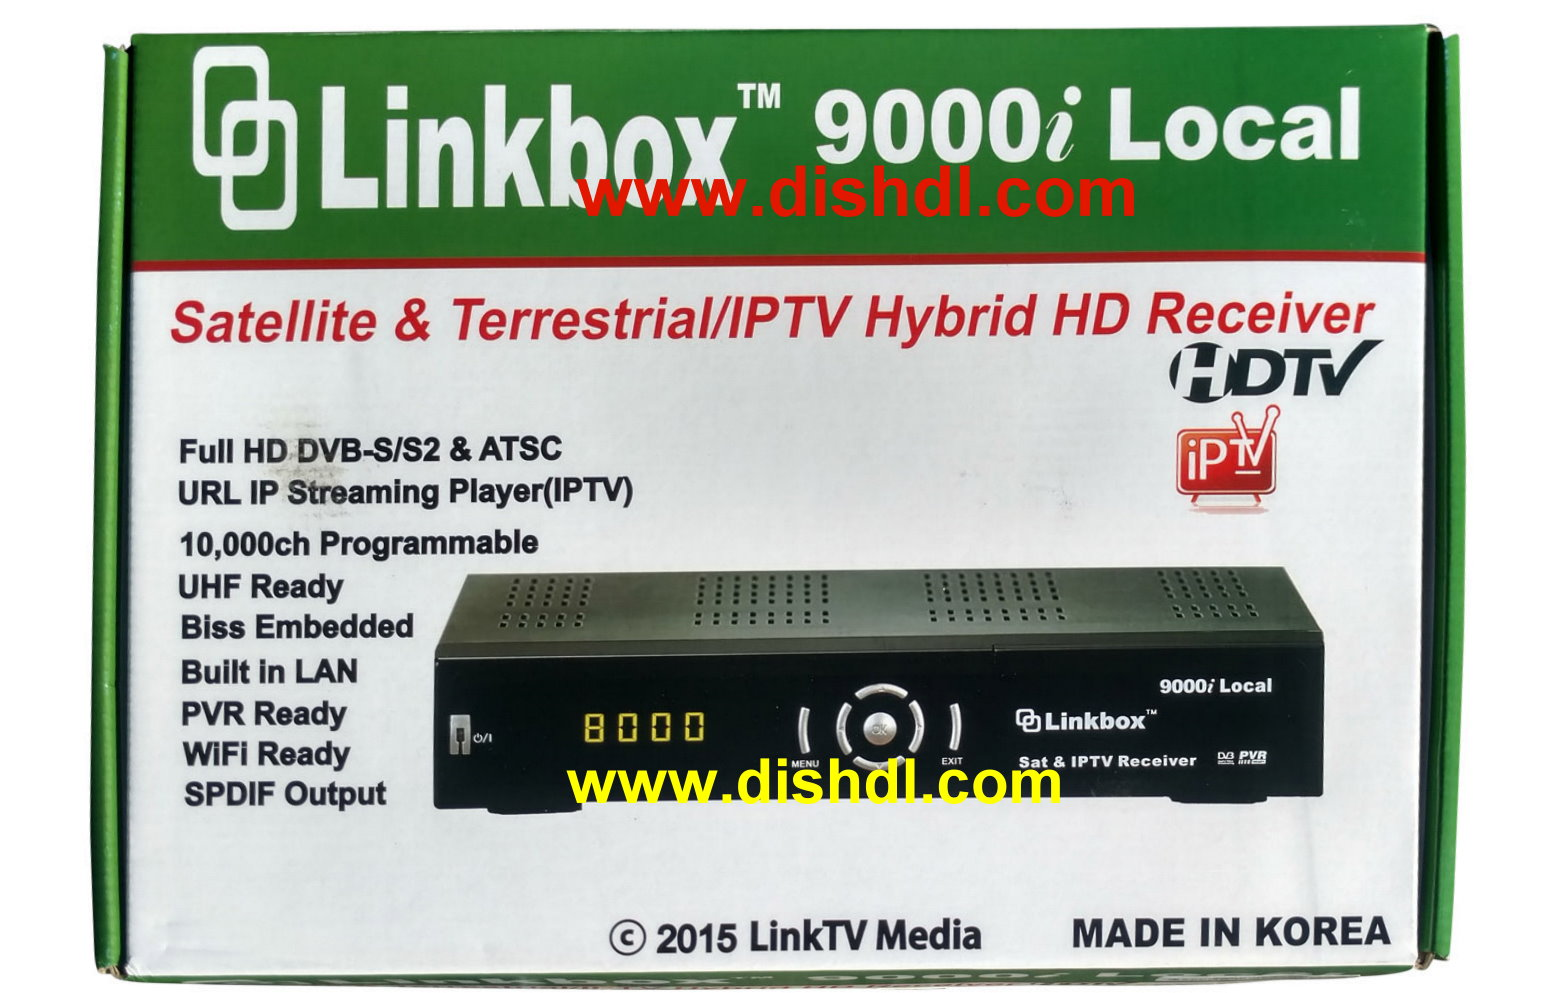 Linkbox 9000i Local Satellite and IPTV Receiver Software & Tools